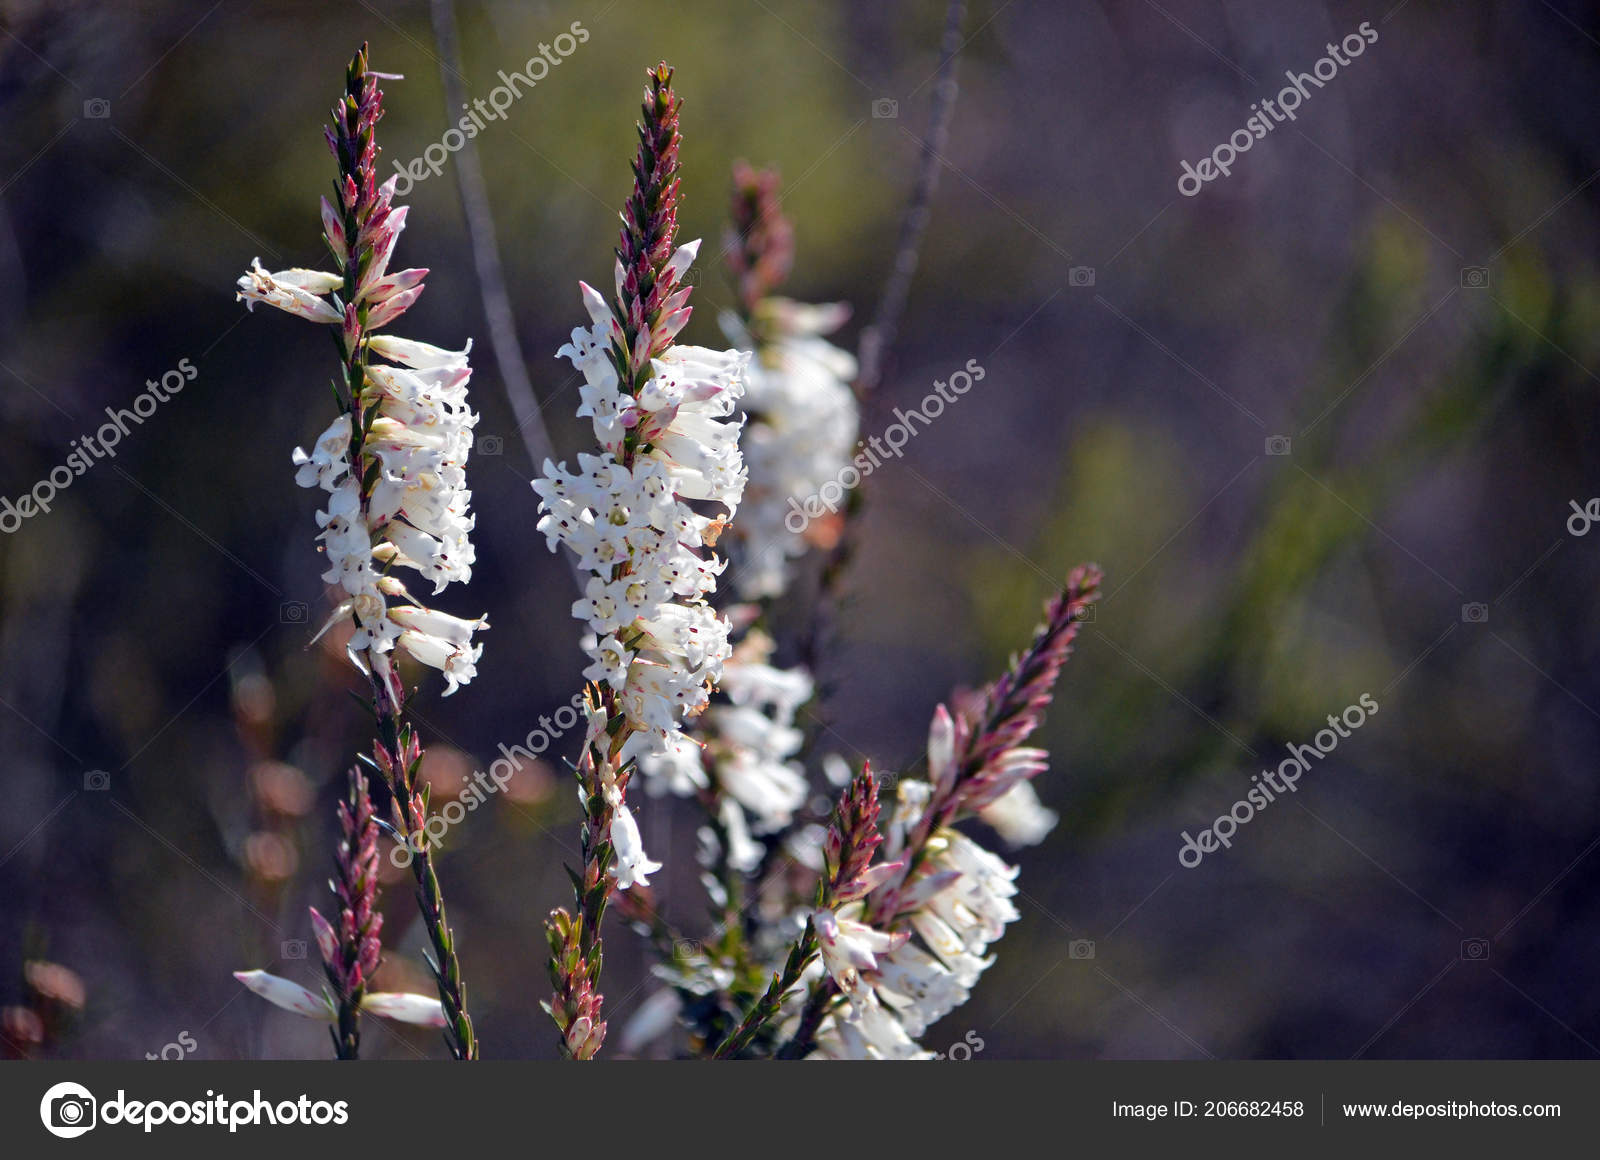 White Bell Shaped Flowers Australian Native Blunt Leaf Heath Epacris